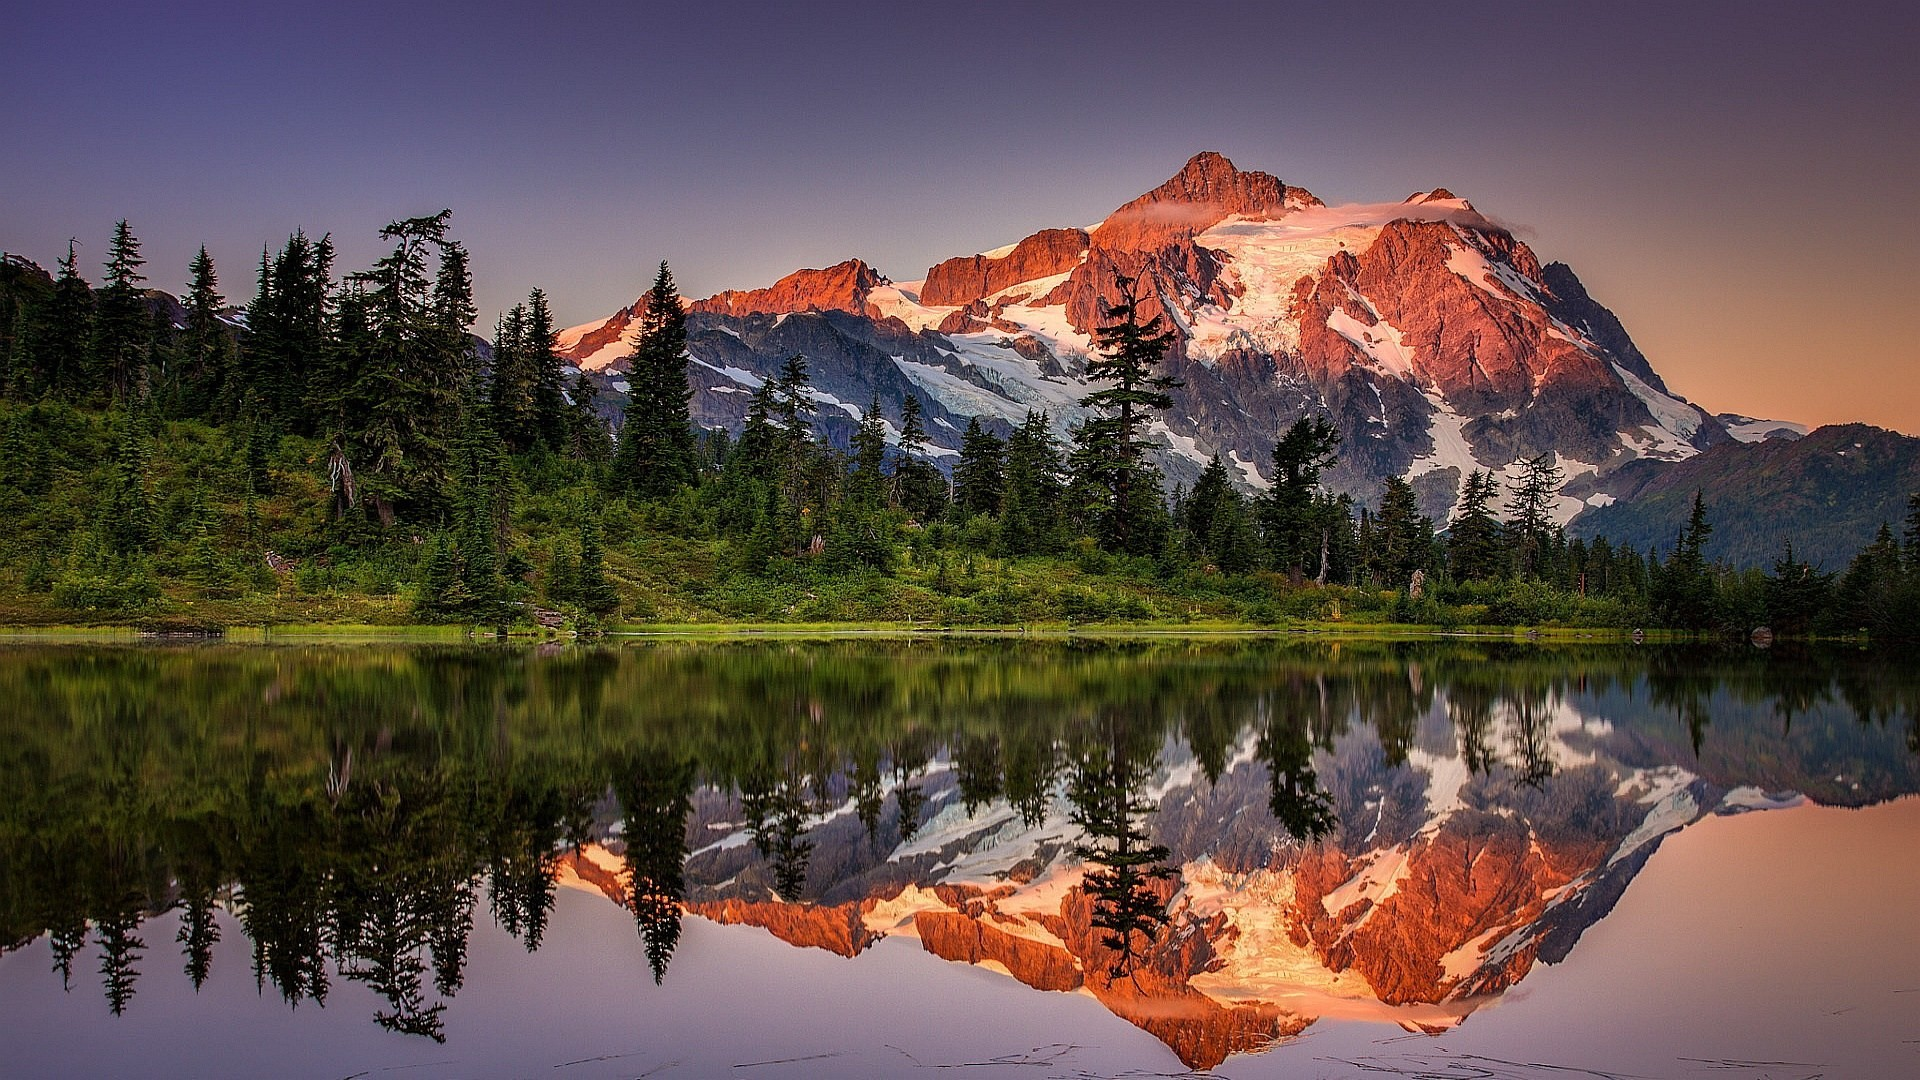 Mountain screensavers and wallpapers 71 images - Mountain screensavers free ...